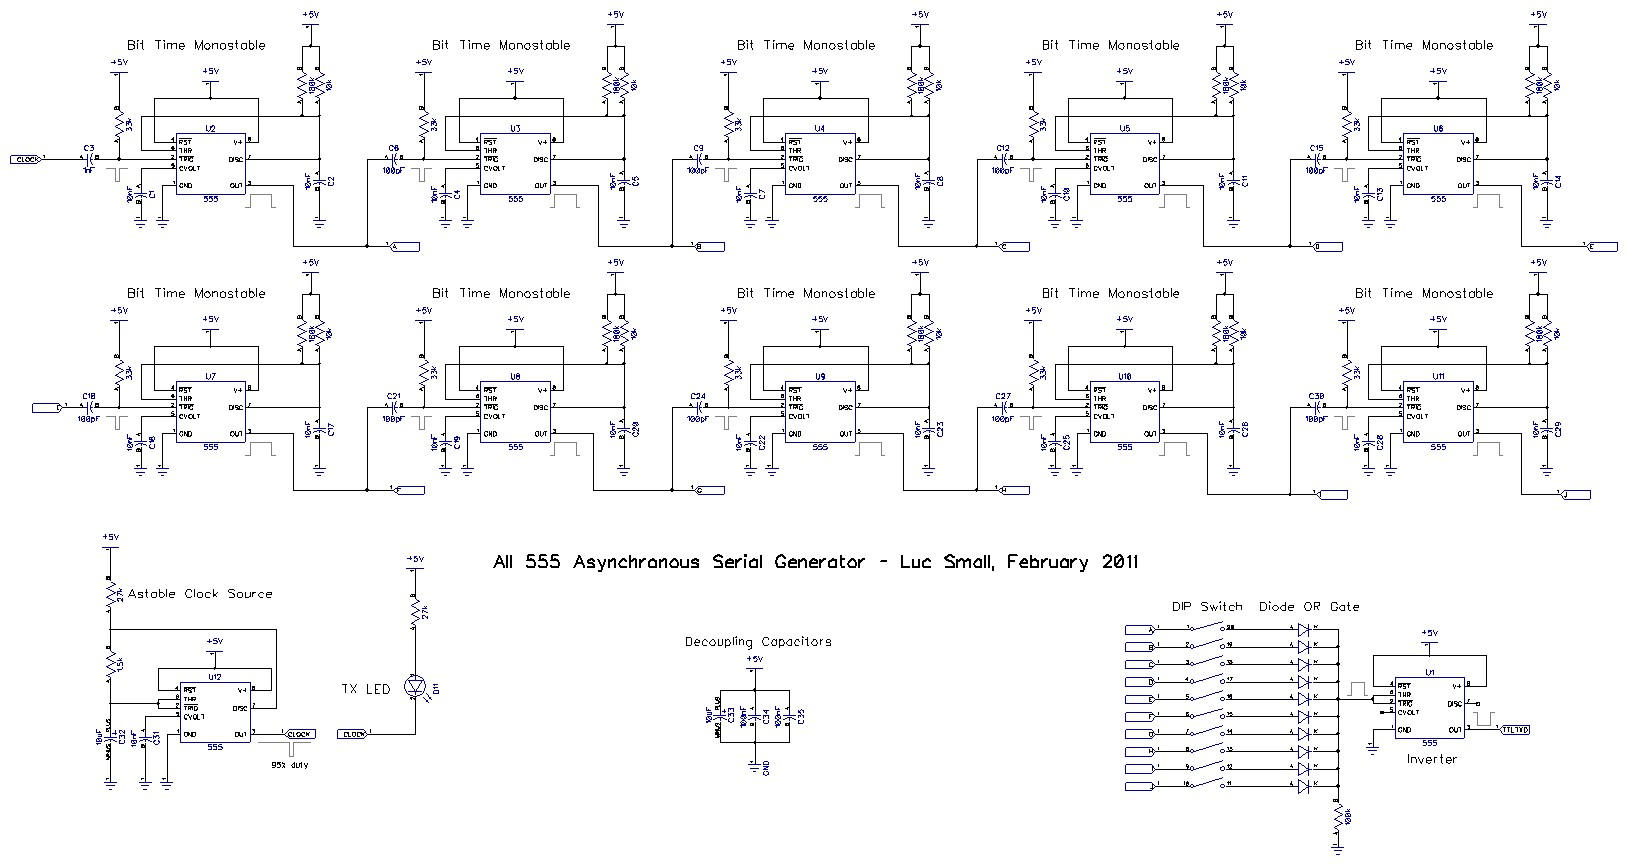 Results Page 47 About Clock 555 Searching Circuits At Wide Range Vco Circuit Schematic Contest Entry An Asynchronous Serial Generator